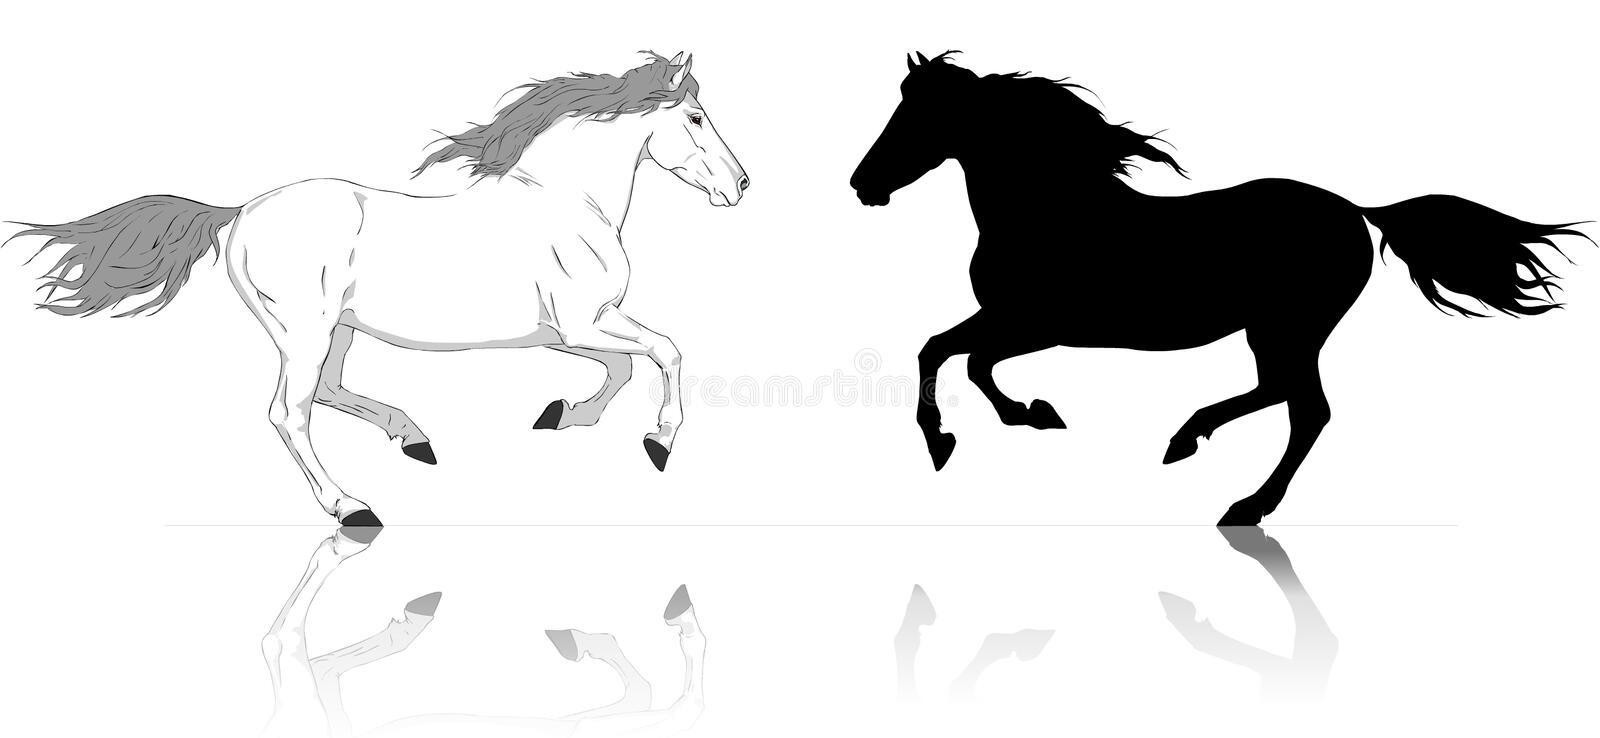 Silhouettes of runs horses white and black vector illustration